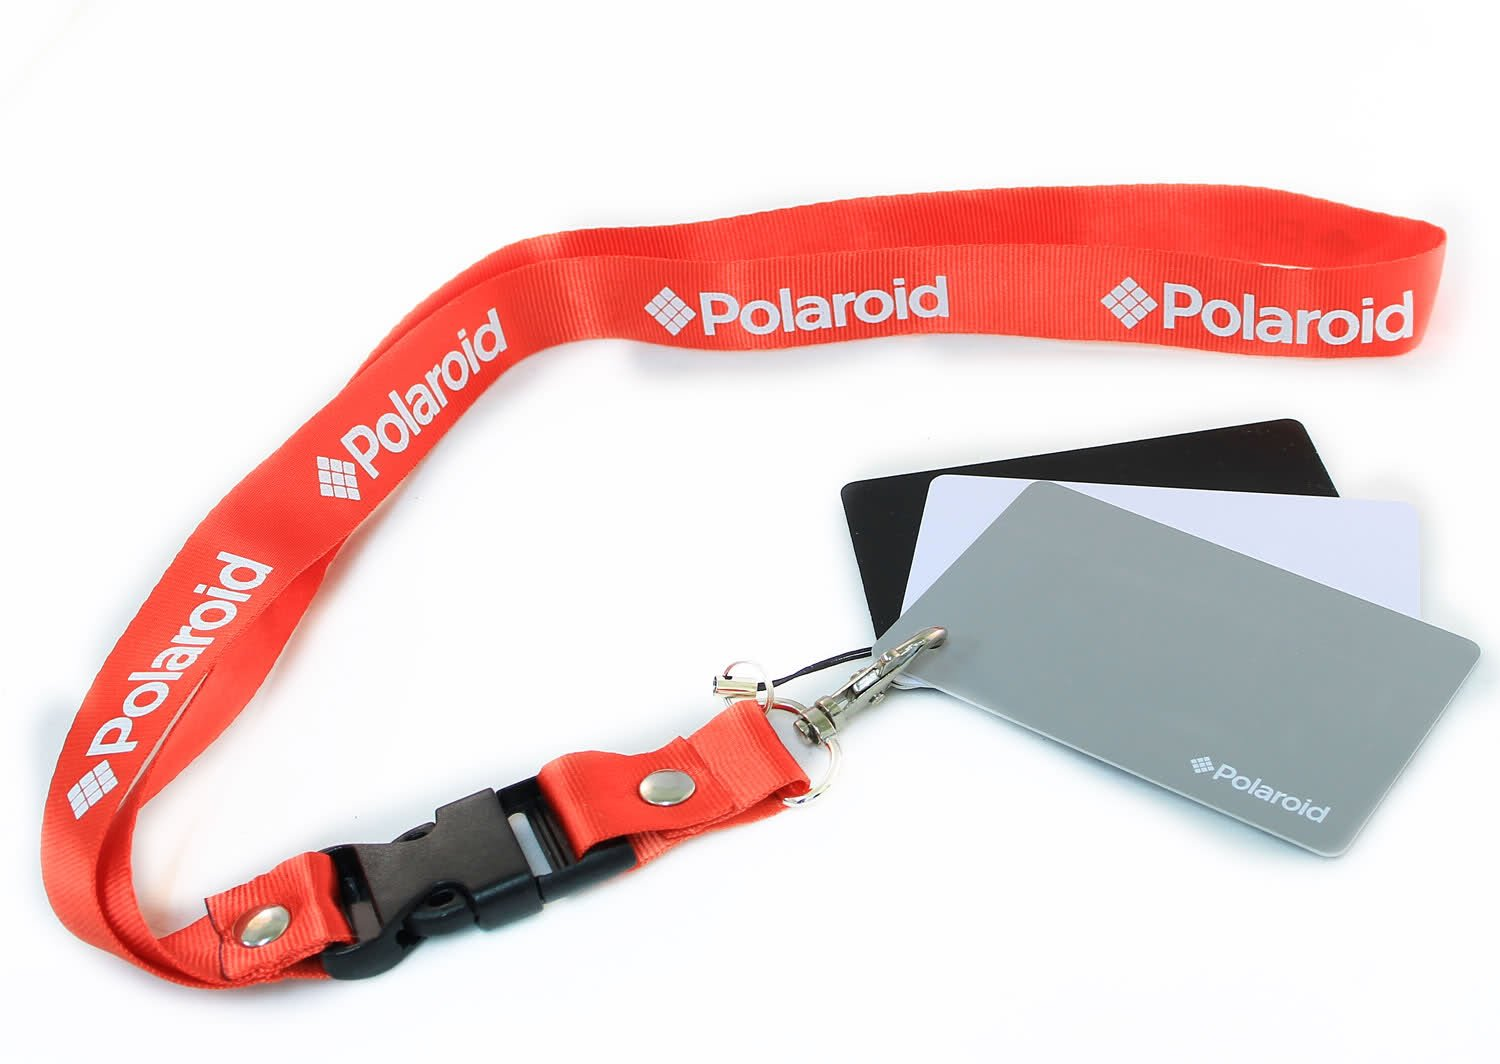 Polaroid Pocket-Sized Digital Grey Card Set With Quick-Release Neck Strap for Digital Photography For The Nikon 1 J1, J2, J3, V1, V2, S1, D40, D40x, D50, D60, D70, D80, D90, D100, D200, D300, D3, D3S, D700, D3000, D5000, D3100, D3200, D7000, D5100, D4, D80